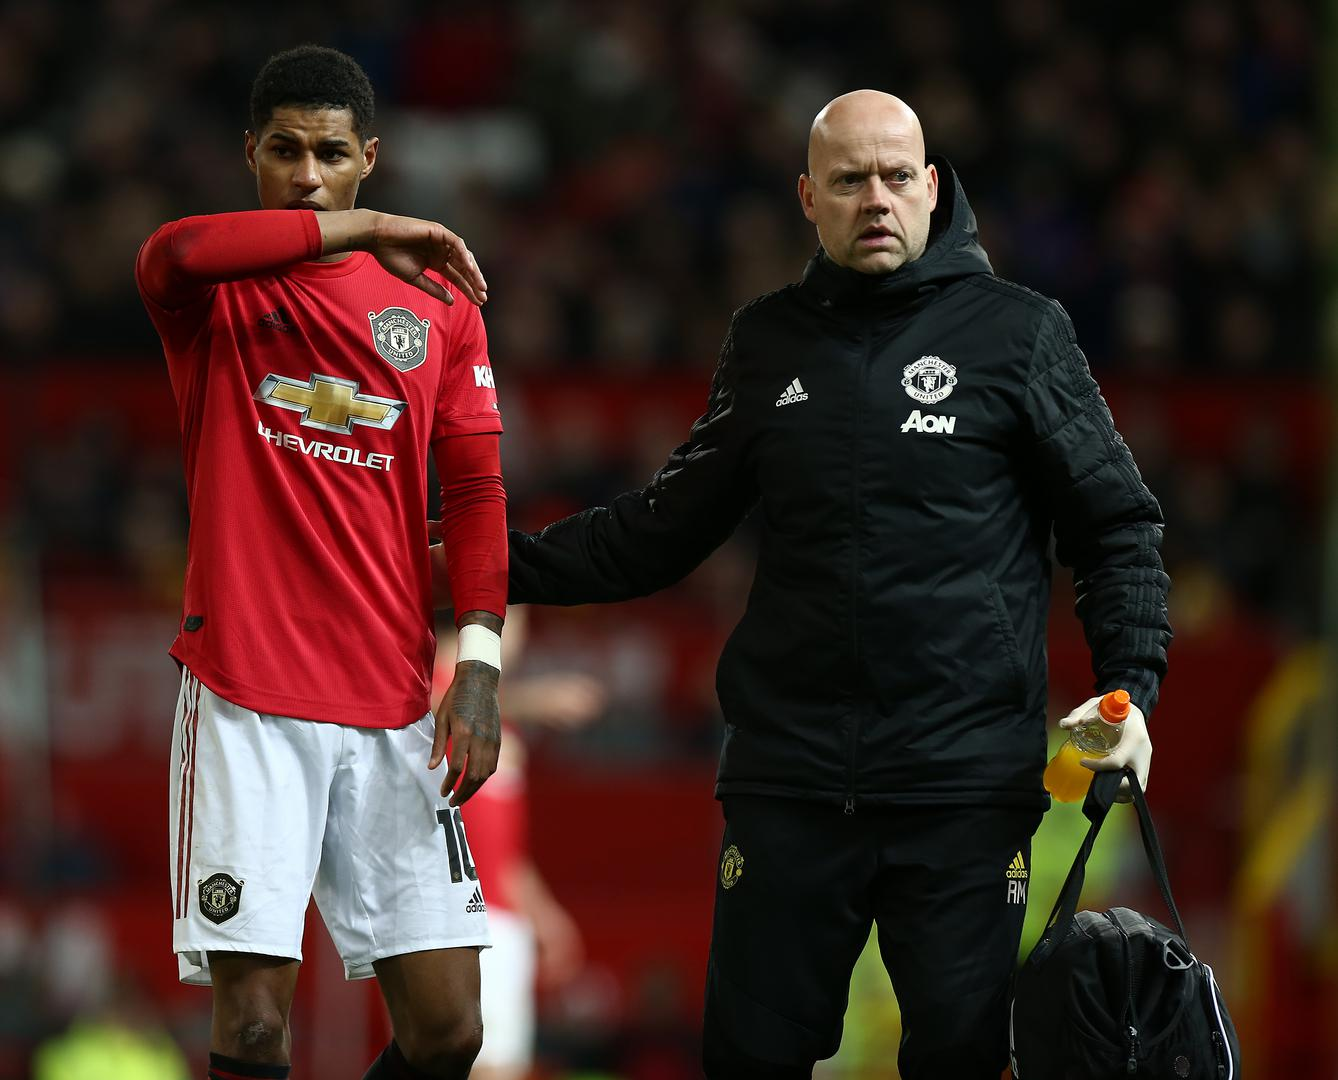 Marcus Rashford goes off injured.